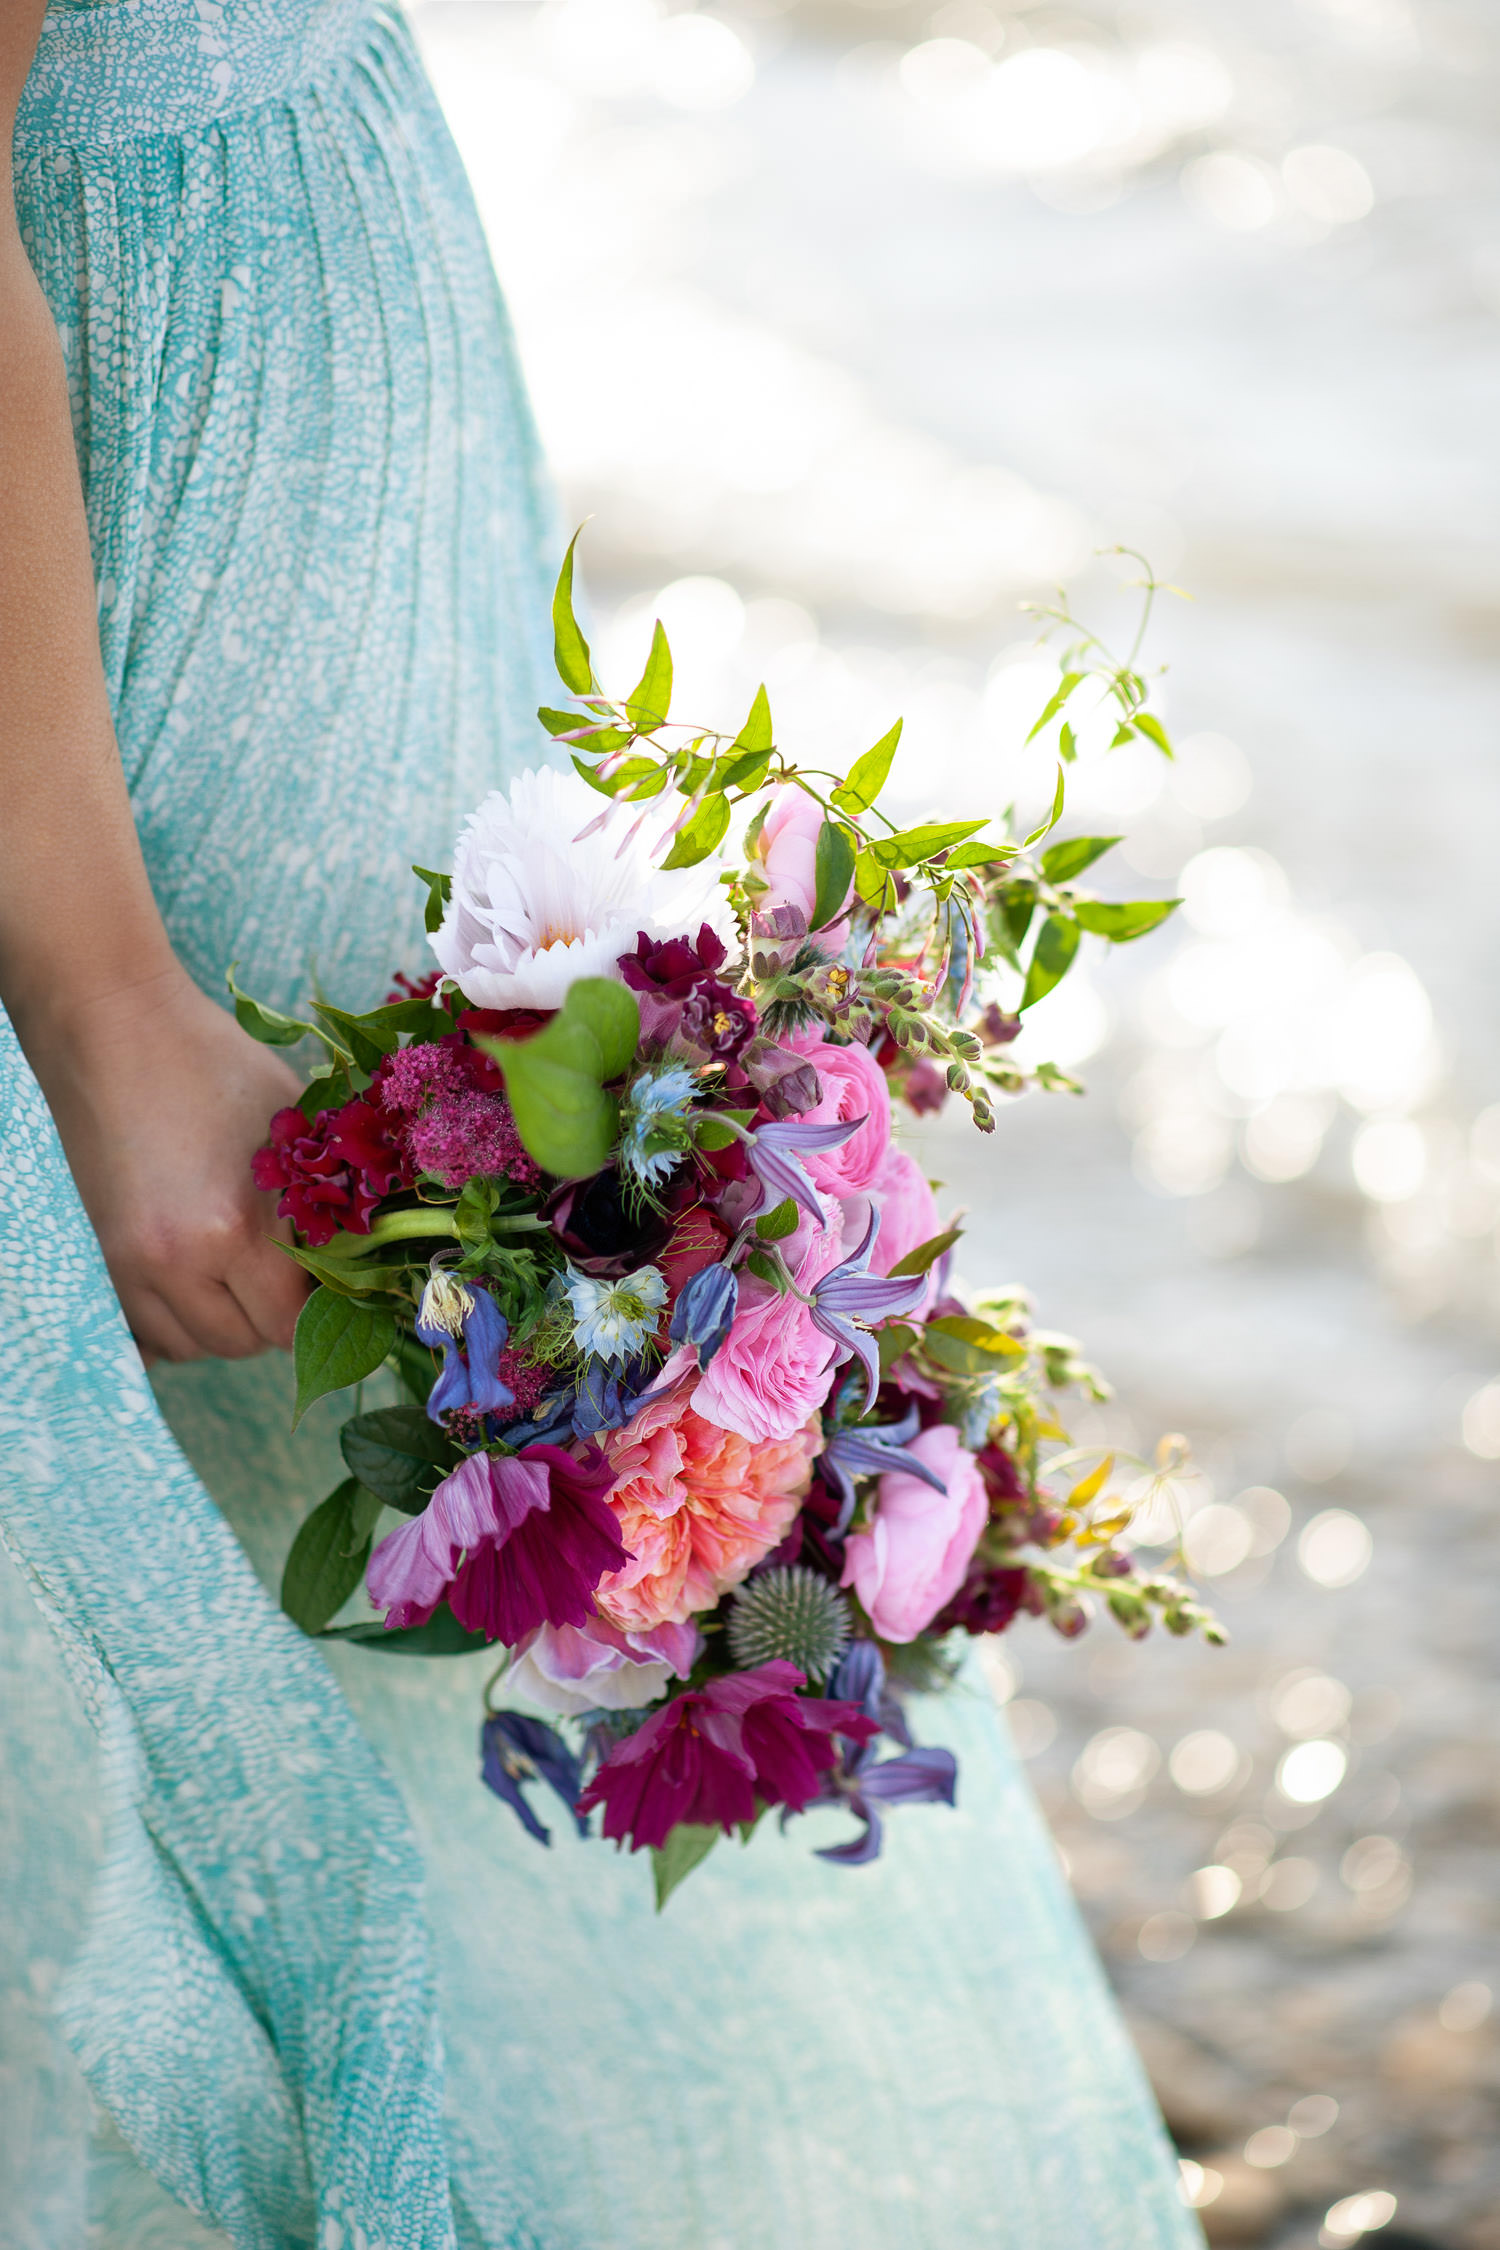 bride holds a pink bouquet from Flowers by Janie captured by Tara Whittaker Photography